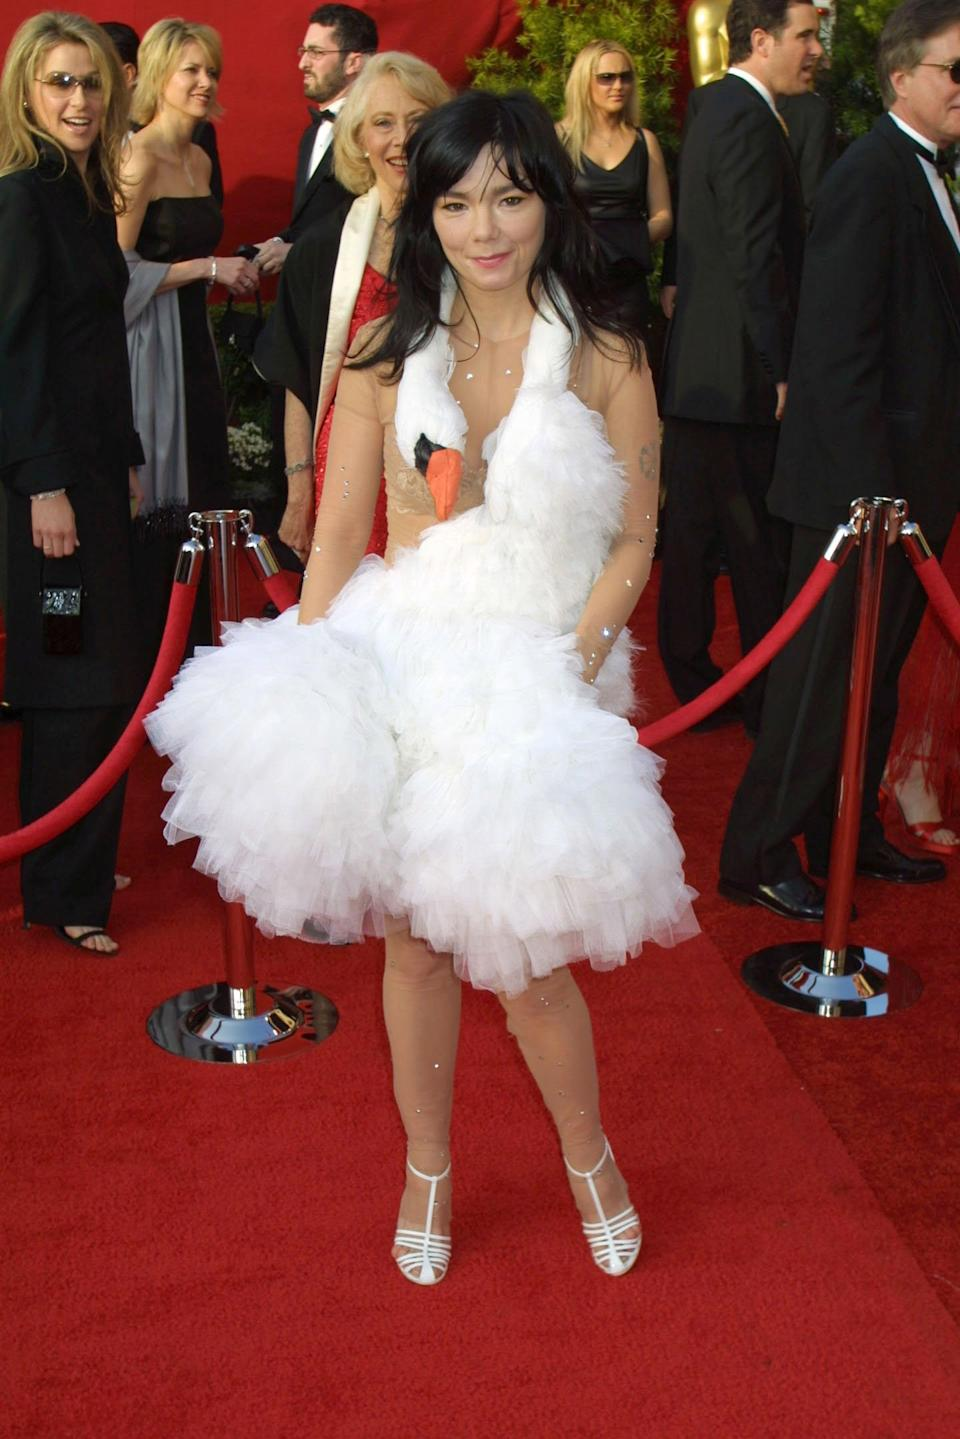 """<p>Björk's """"swan dress"""" became a global sensation for its offbeat design. The quirky Icelandic singer even stopped several times to """"lay eggs"""" on the red carpet for bewildered spectators. Although the look was blasted by fashion critics, Björk maintains that the dress was merely a joke intended to """"take the piss"""" out of the event. """"I was actually amazed at how many people thought I was serious,"""" she told the <a href=""""https://www.thetimes.co.uk/article/bjork-again-2d37mrbvphv"""" rel=""""nofollow noopener"""" target=""""_blank"""" data-ylk=""""slk:Sunday Times"""" class=""""link rapid-noclick-resp""""><em>Sunday Times</em></a> in 2004. """"I didn't mean to cause a riot.""""</p>"""